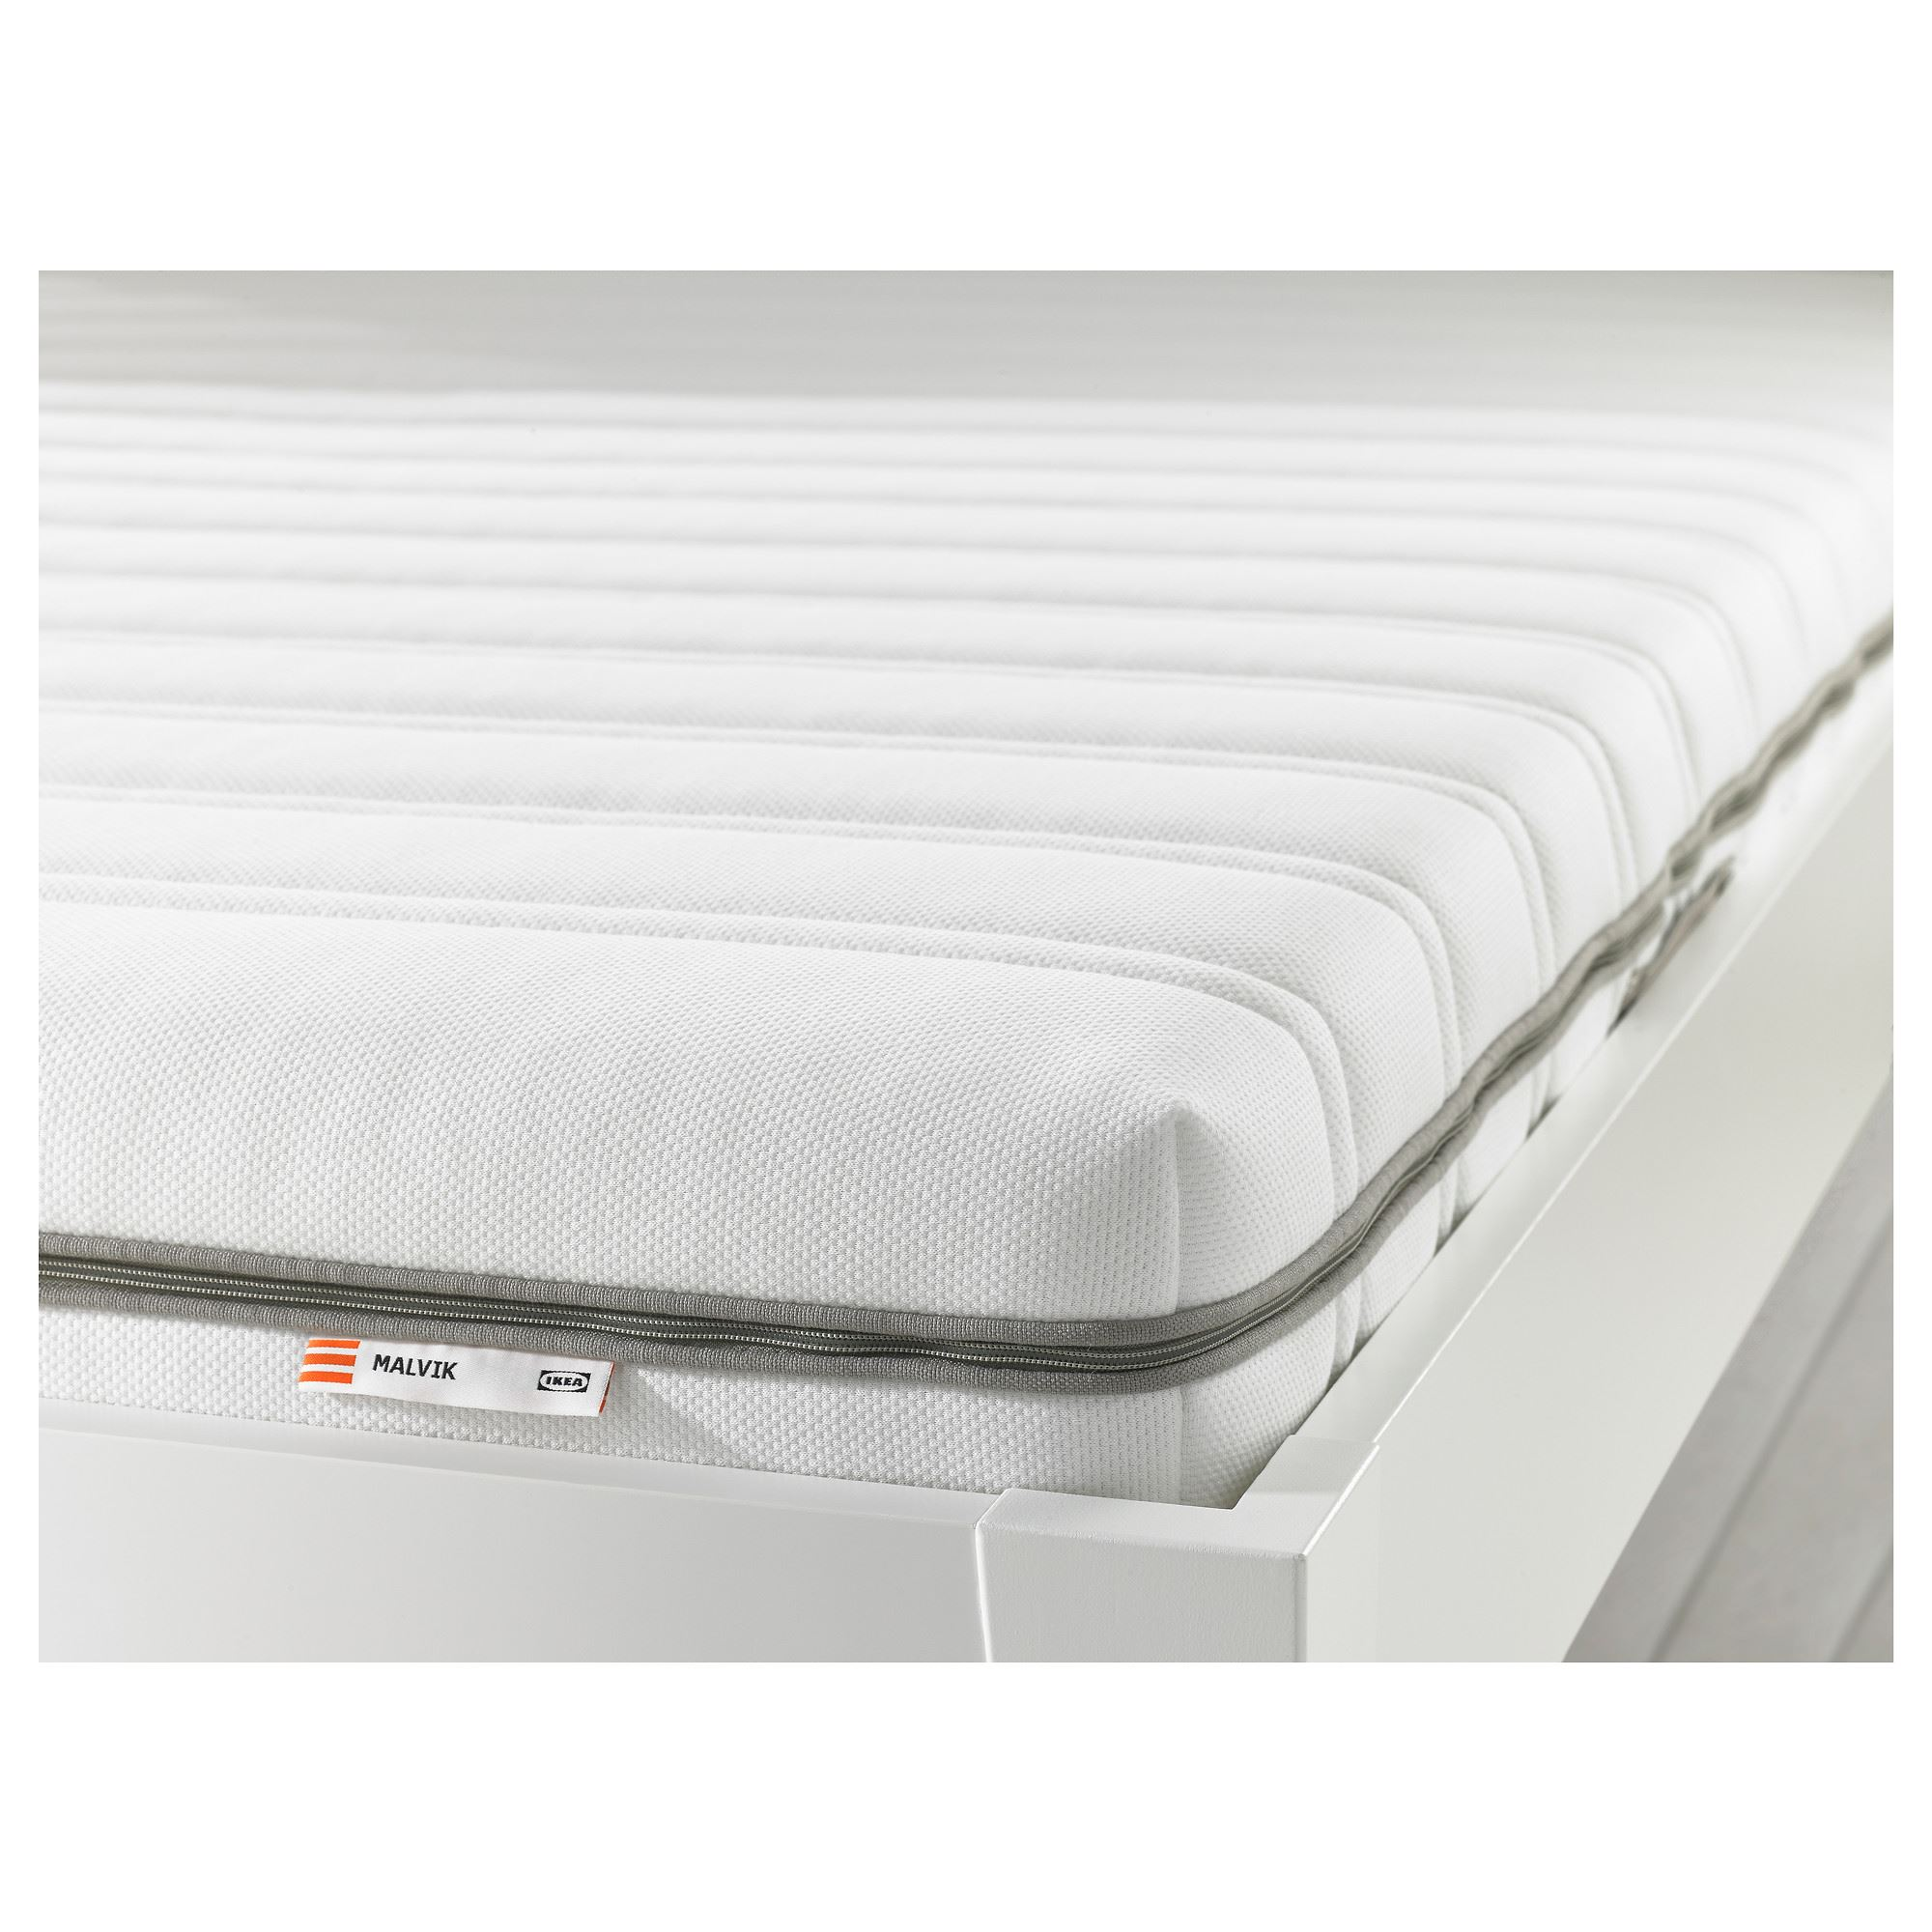 Double Bed Mattress Cover Malvik Double Bed Mattress White Firm 140x200 Cm Ikea Bedroom